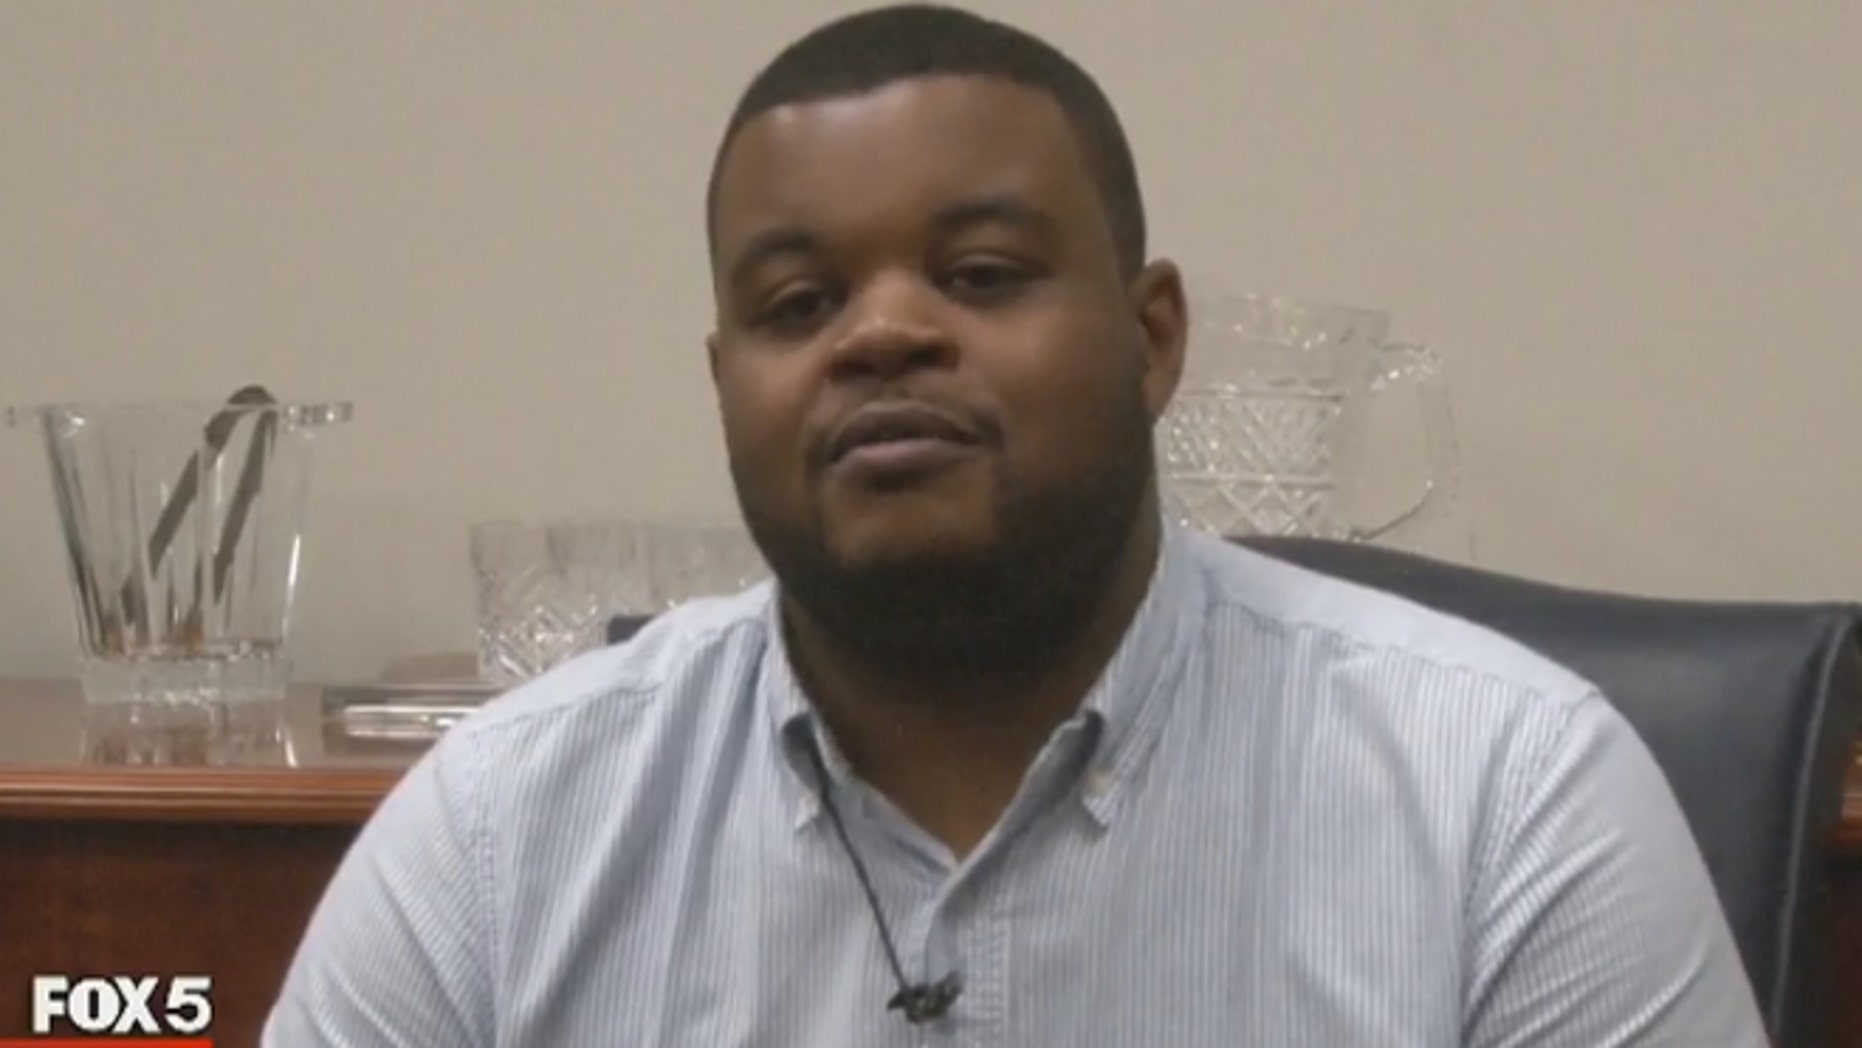 Daeontae Smith, a 911 dispatcher, was reportedly credited with saving a woman's life who was being assaulted.